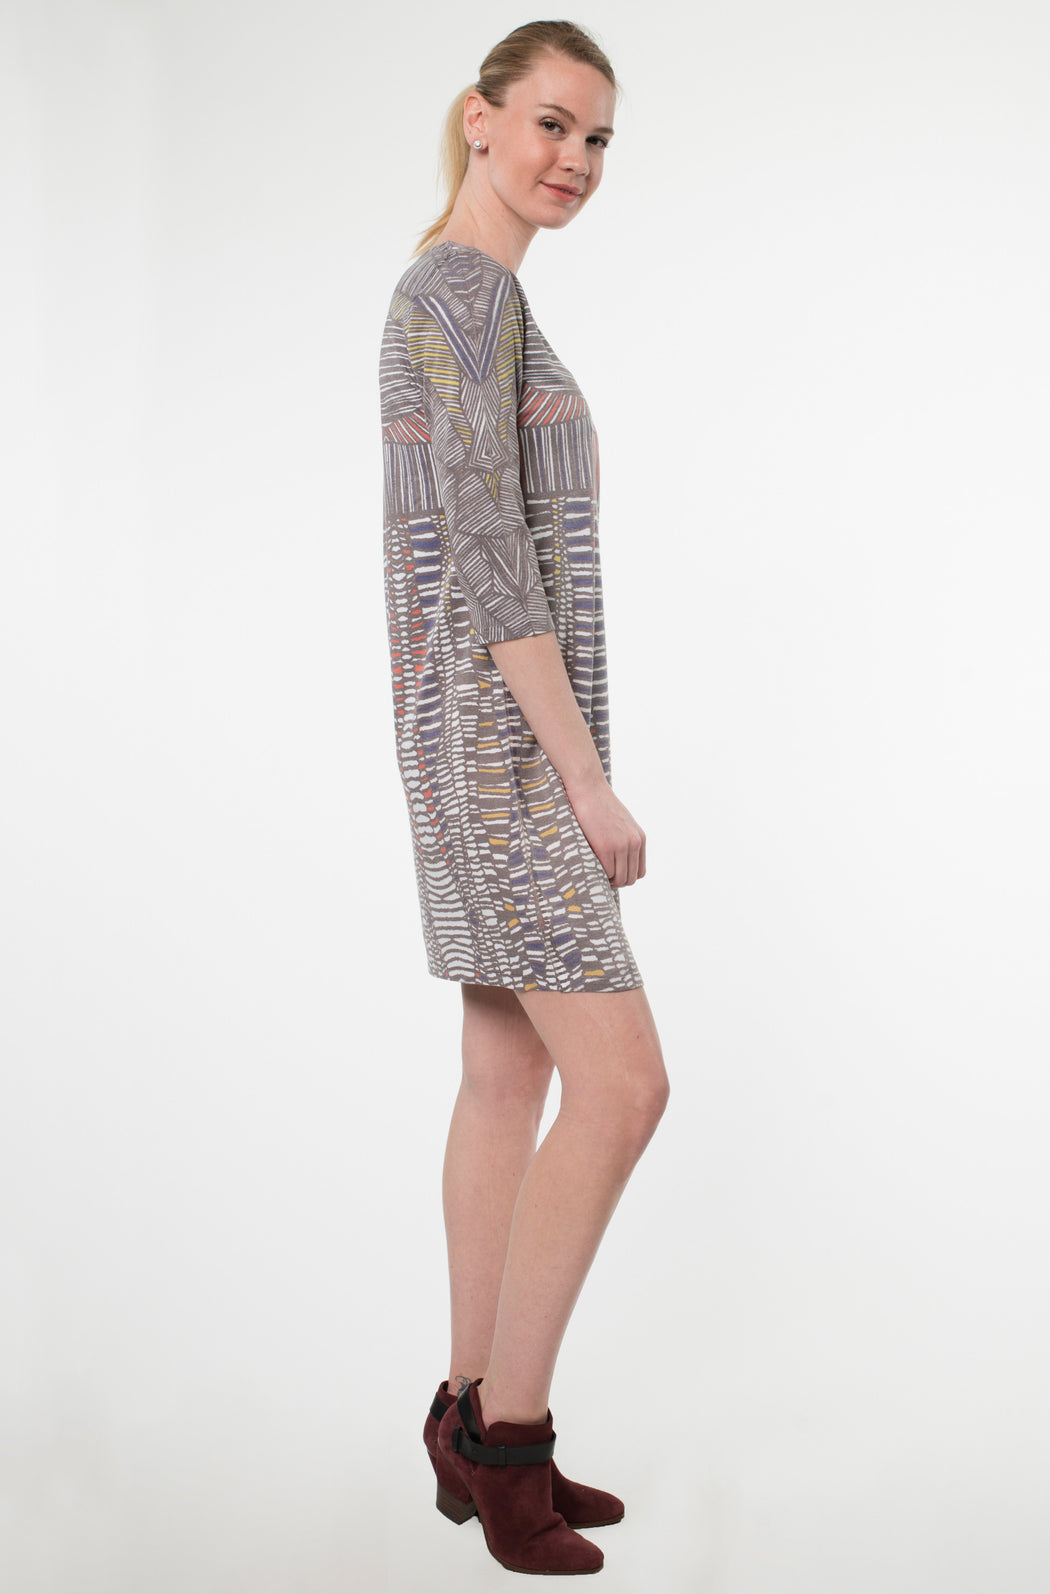 Hawaiian Notch Neck Dress in Carres Print - Atelier5